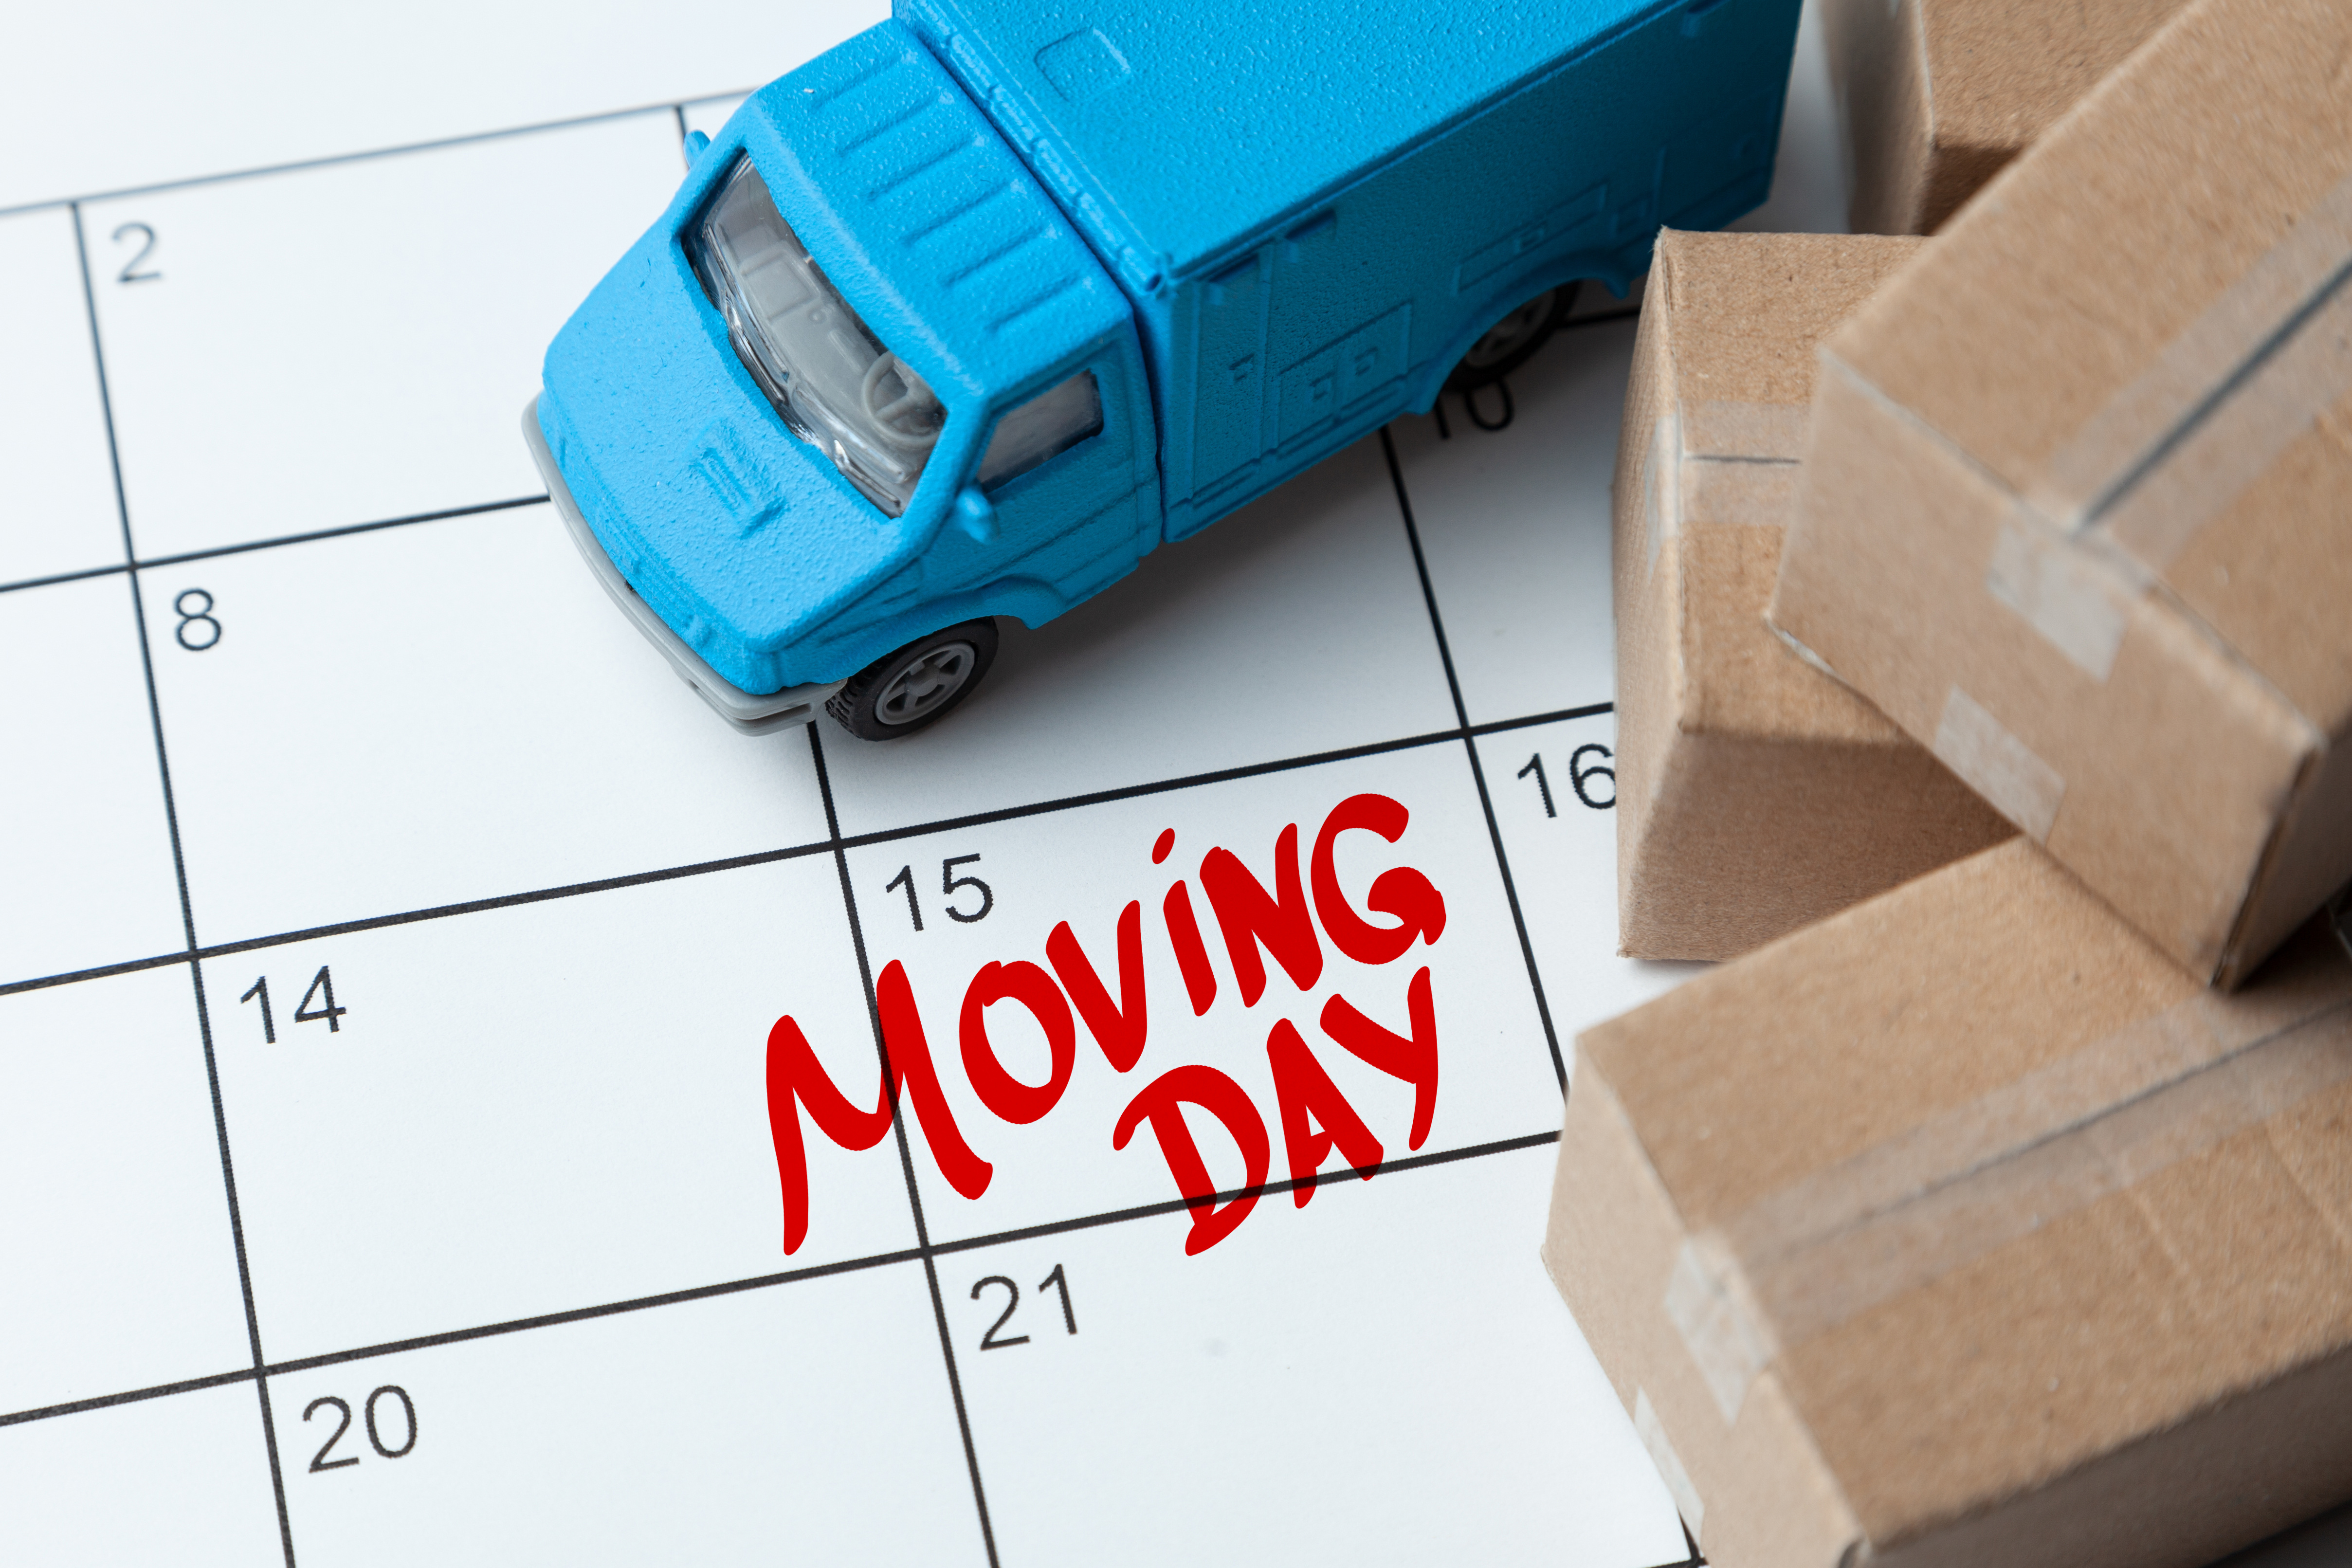 Moving day on the calendar is written in red. Calendar with a note with cardboard boxes and truck